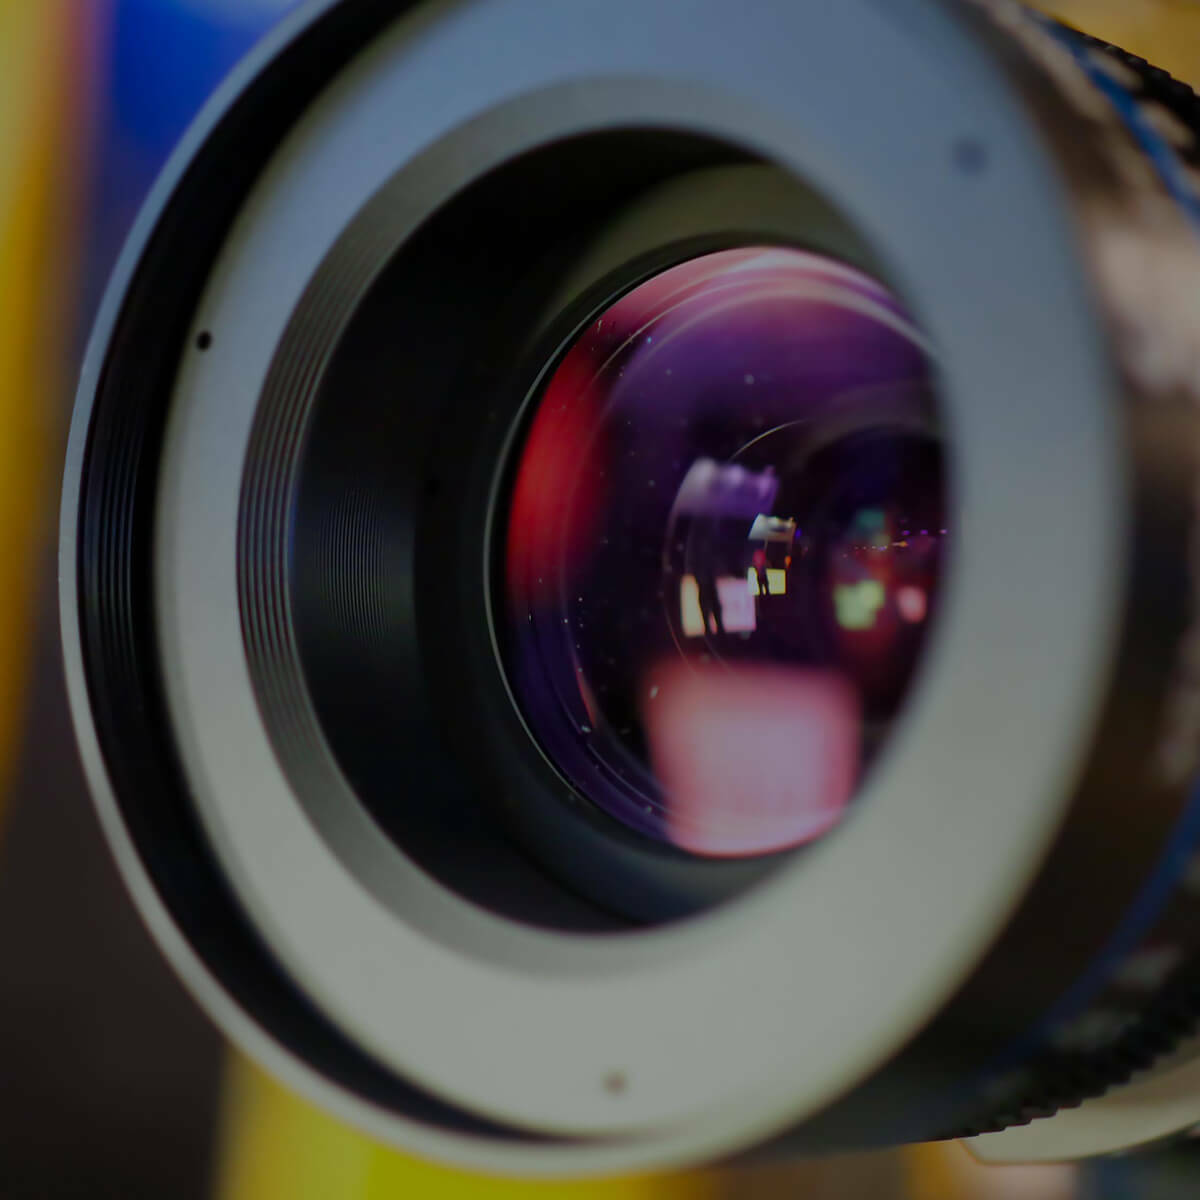 A close up of a camera lens with purple glare and reflection of a persons silhouette